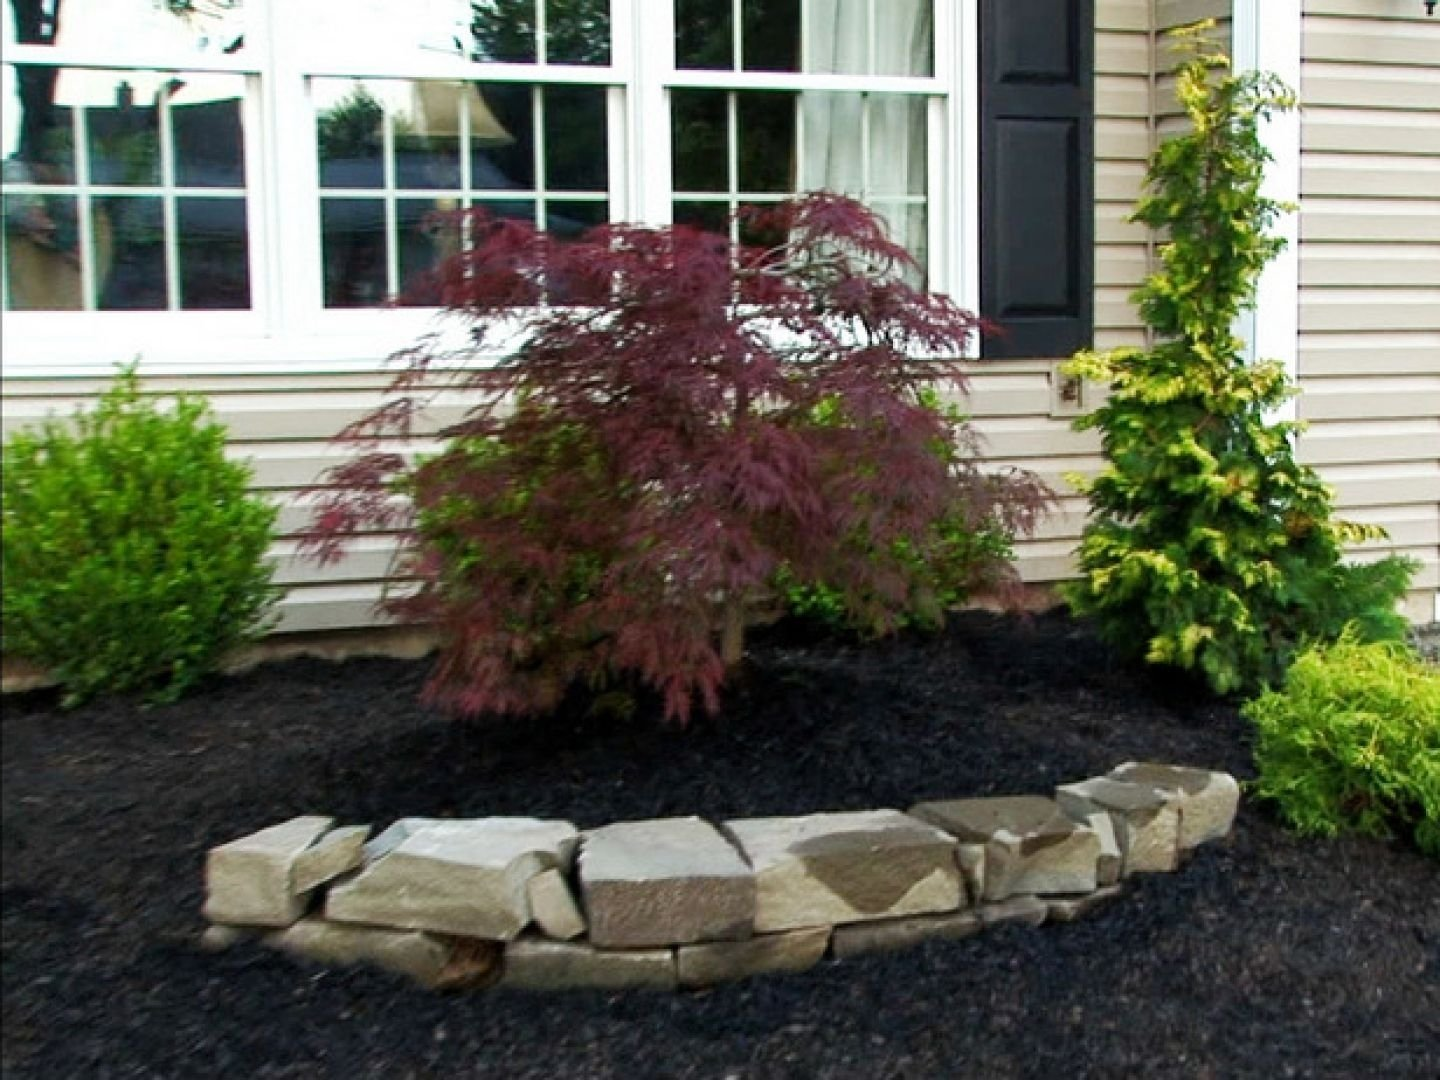 10 Stunning Small Front Yard Landscaping Ideas stunning small front yard landscaping ideas the landscape design 1